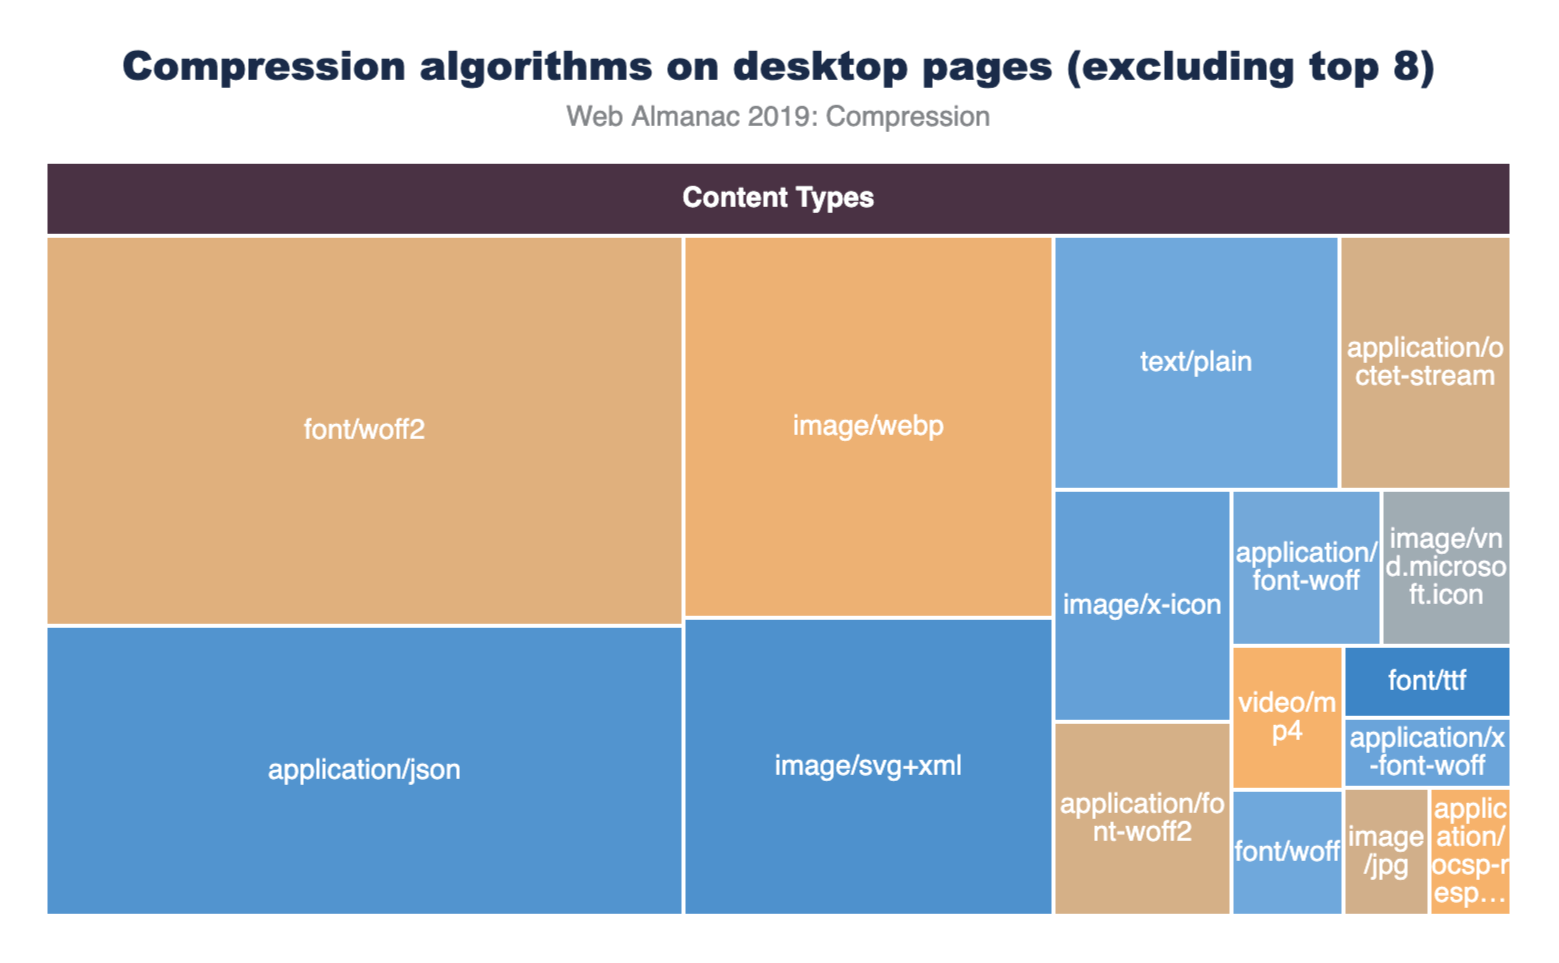 Figure 4. Compressed content types, excluding top 8.